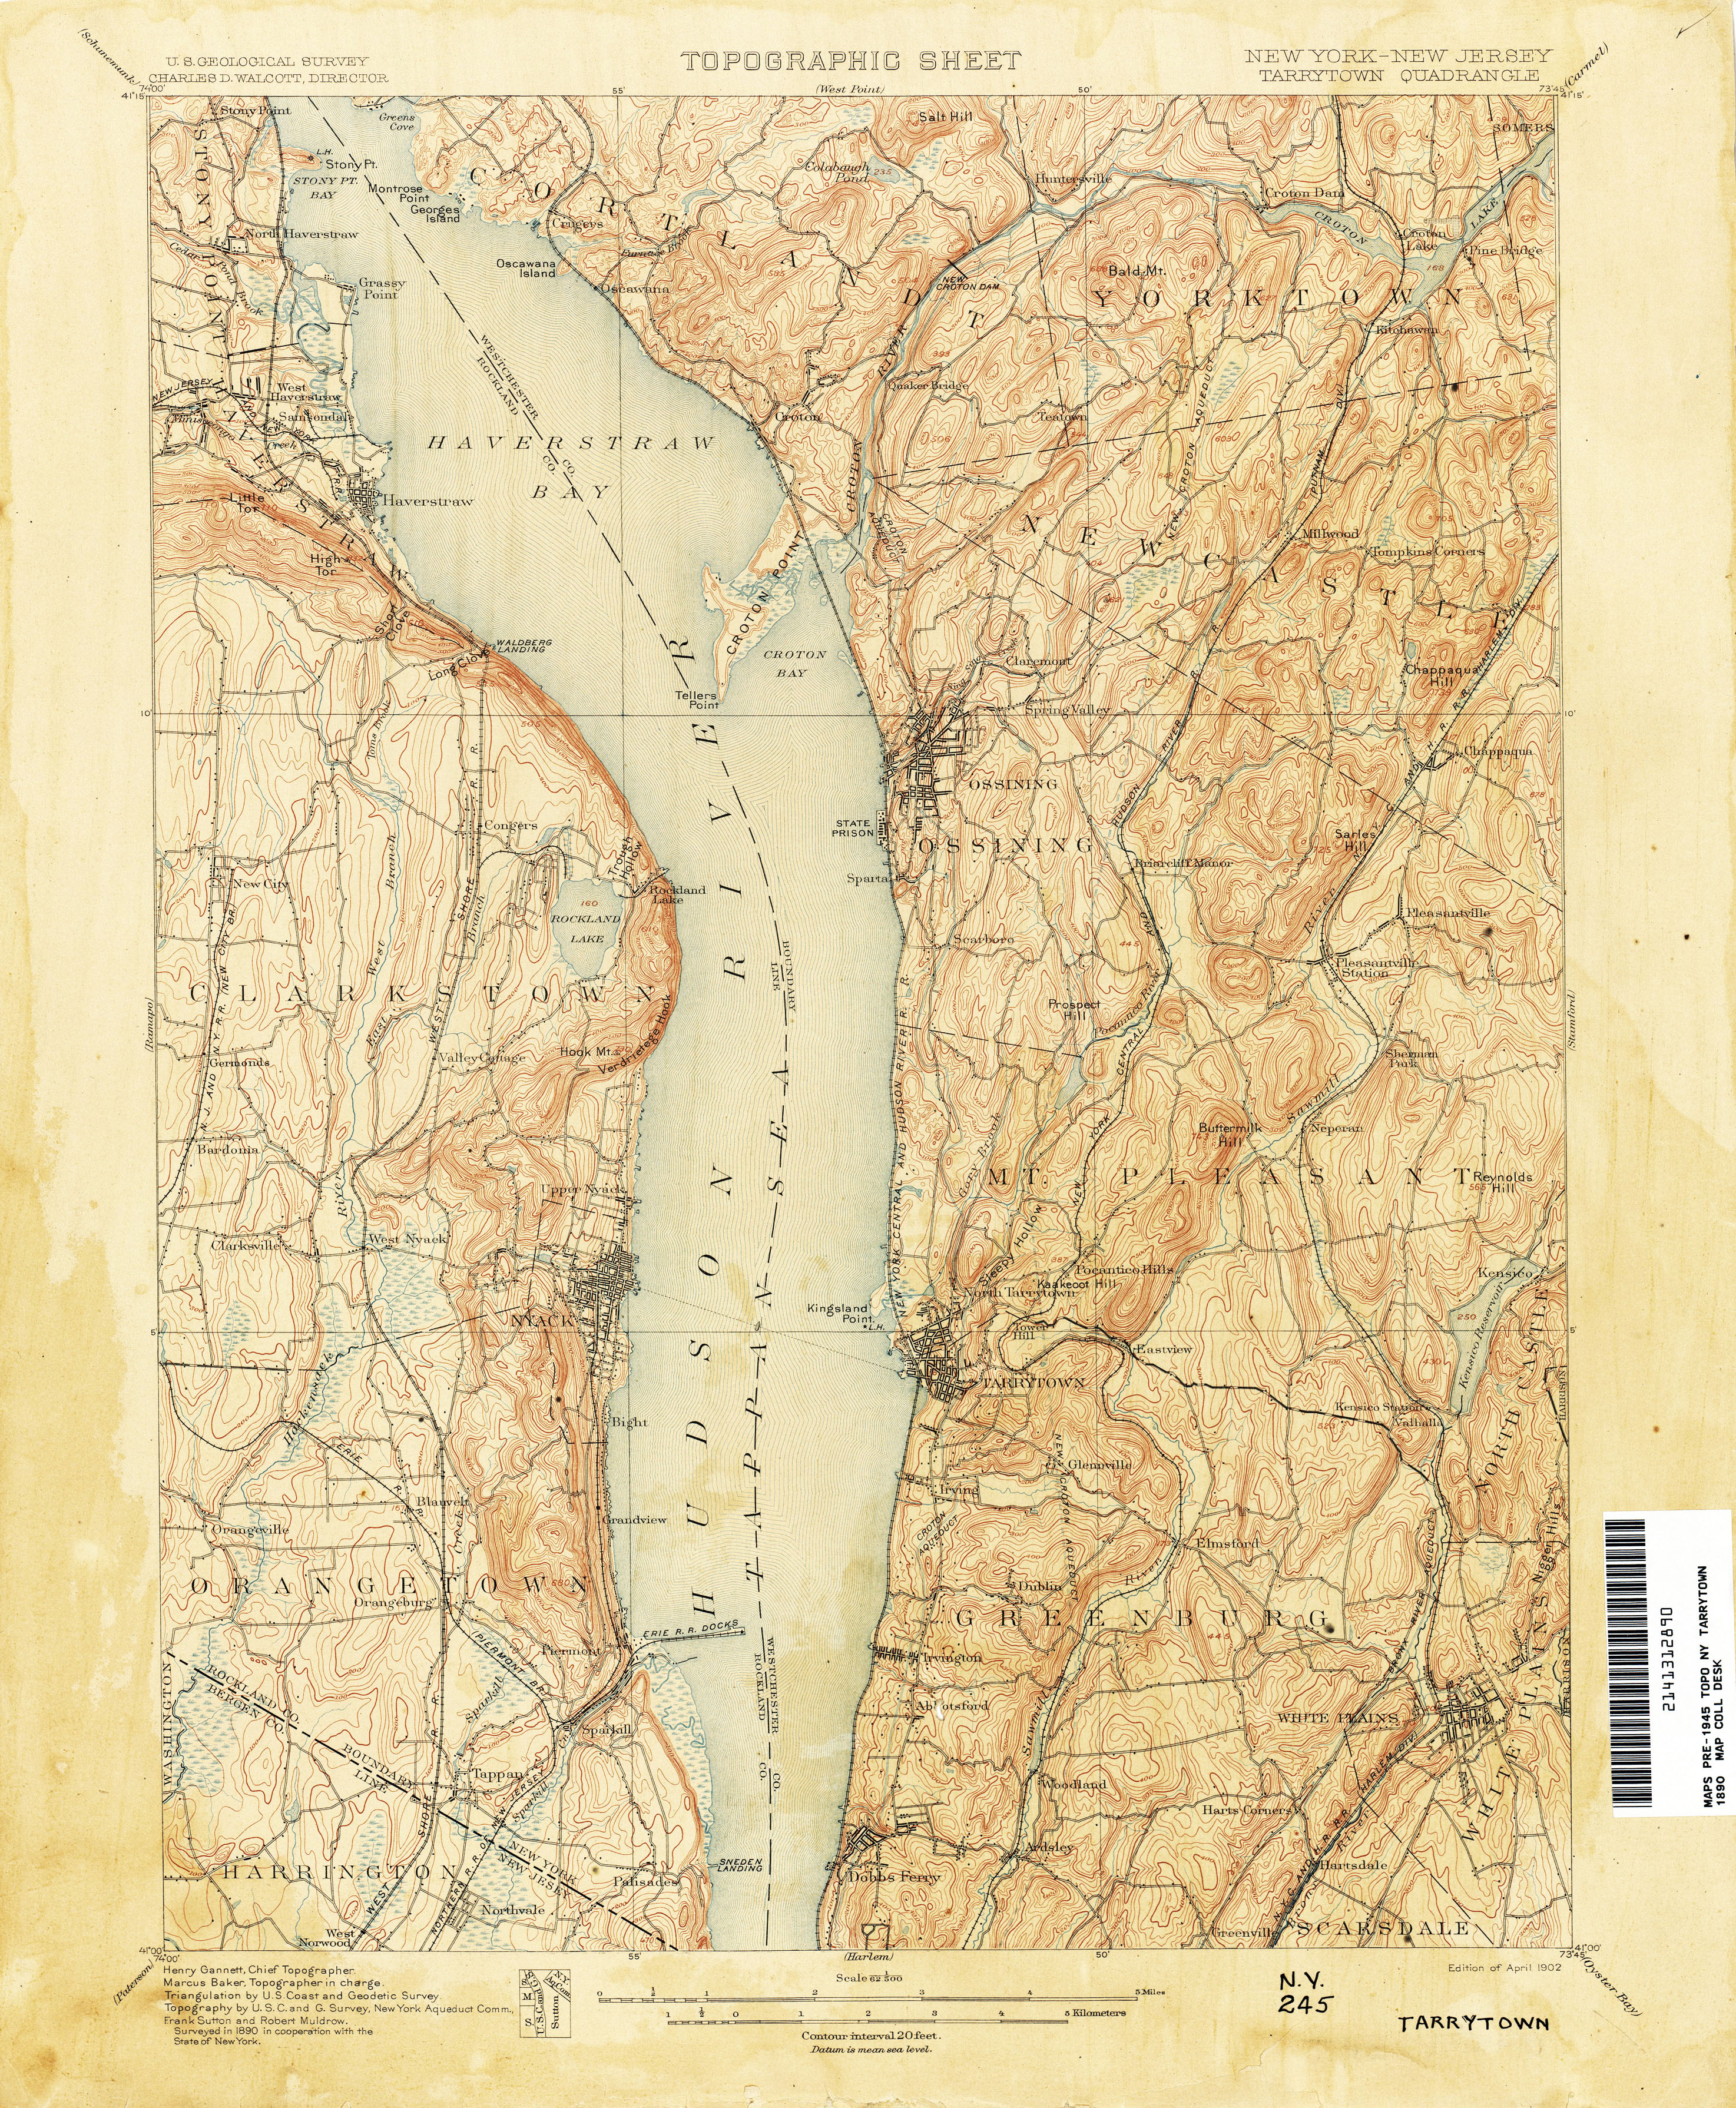 New Jersey Topographic Maps PerryCastañeda Map Collection UT - New york jersey map